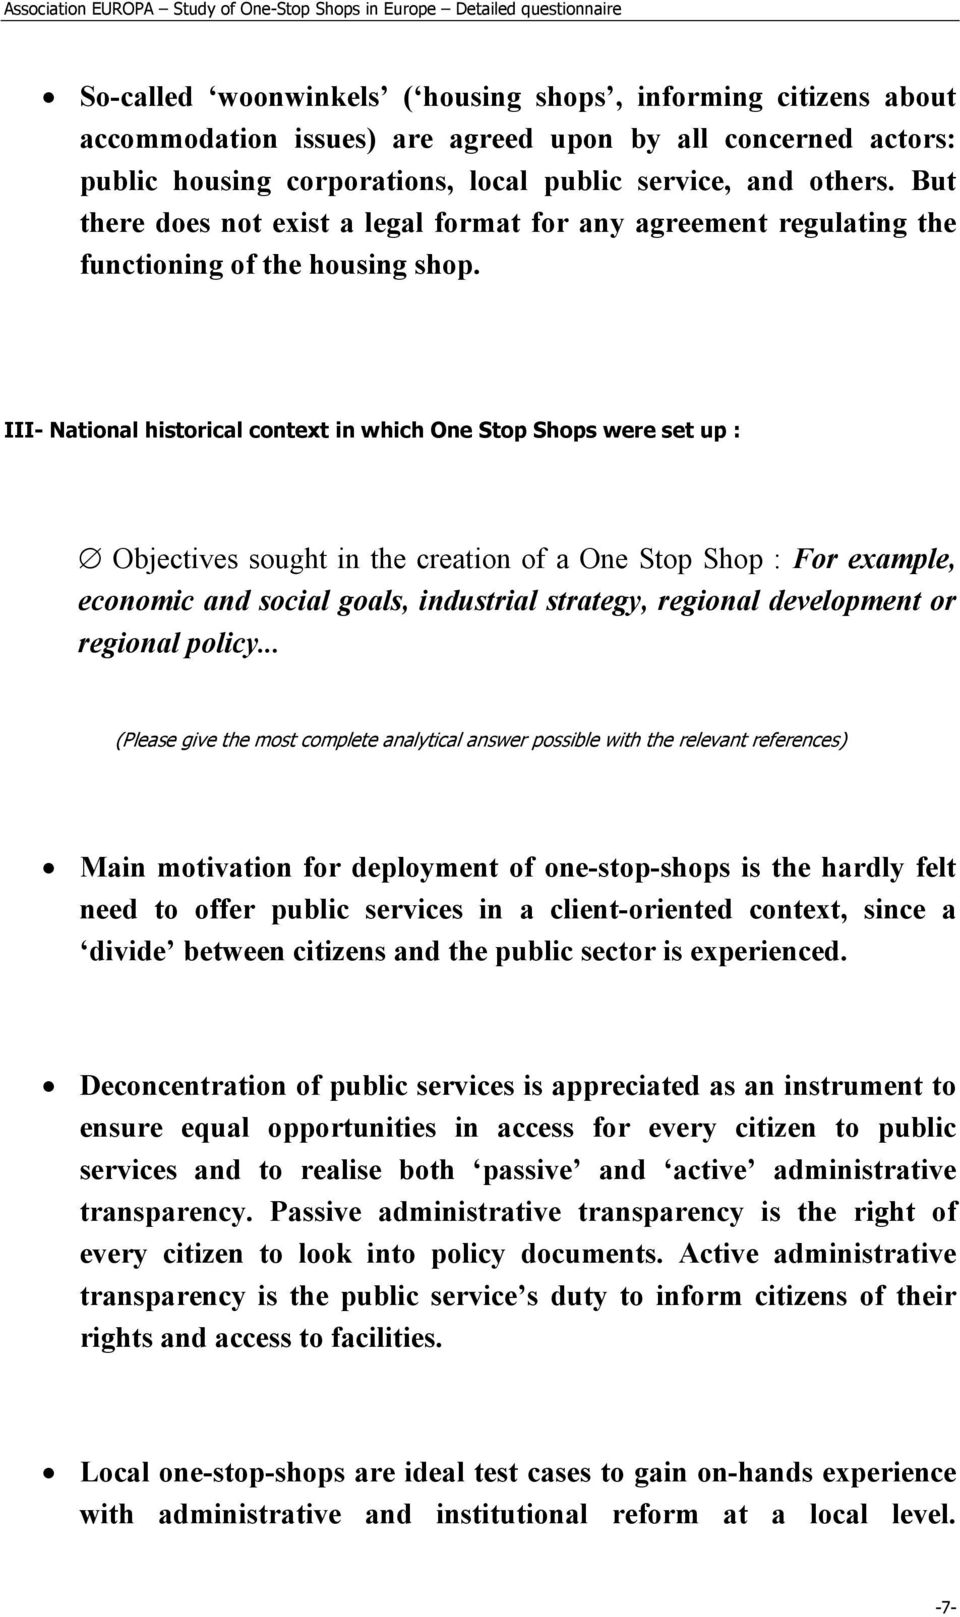 III- National historical context in which One Stop Shops were set up : Objectives sought in the creation of a One Stop Shop : For example, economic and social goals, industrial strategy, regional